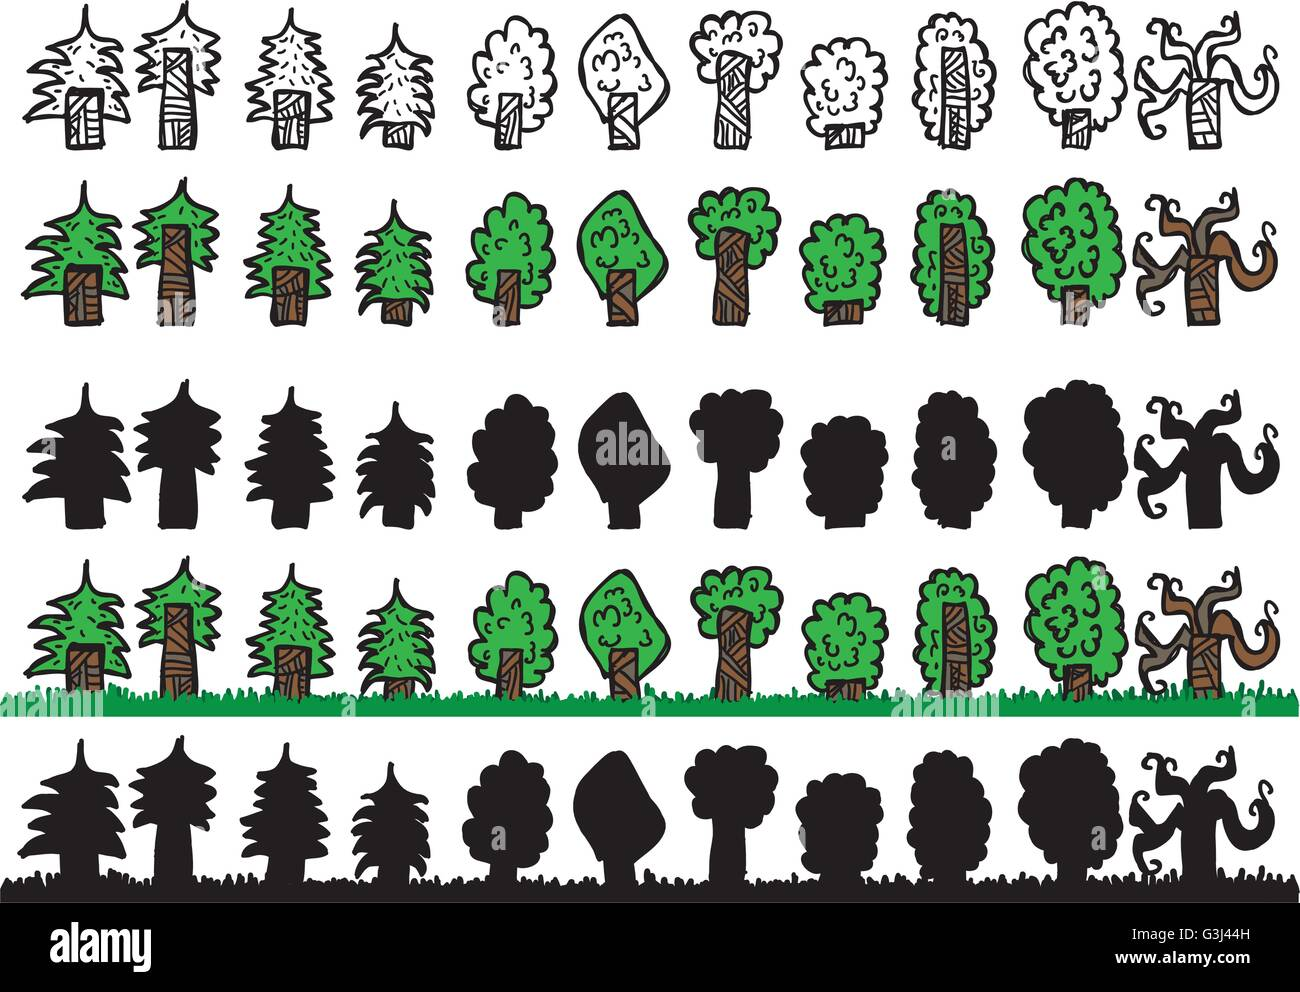 Trees doodle sheet with outline, colored, silhouette and two seamless layers - Stock Vector